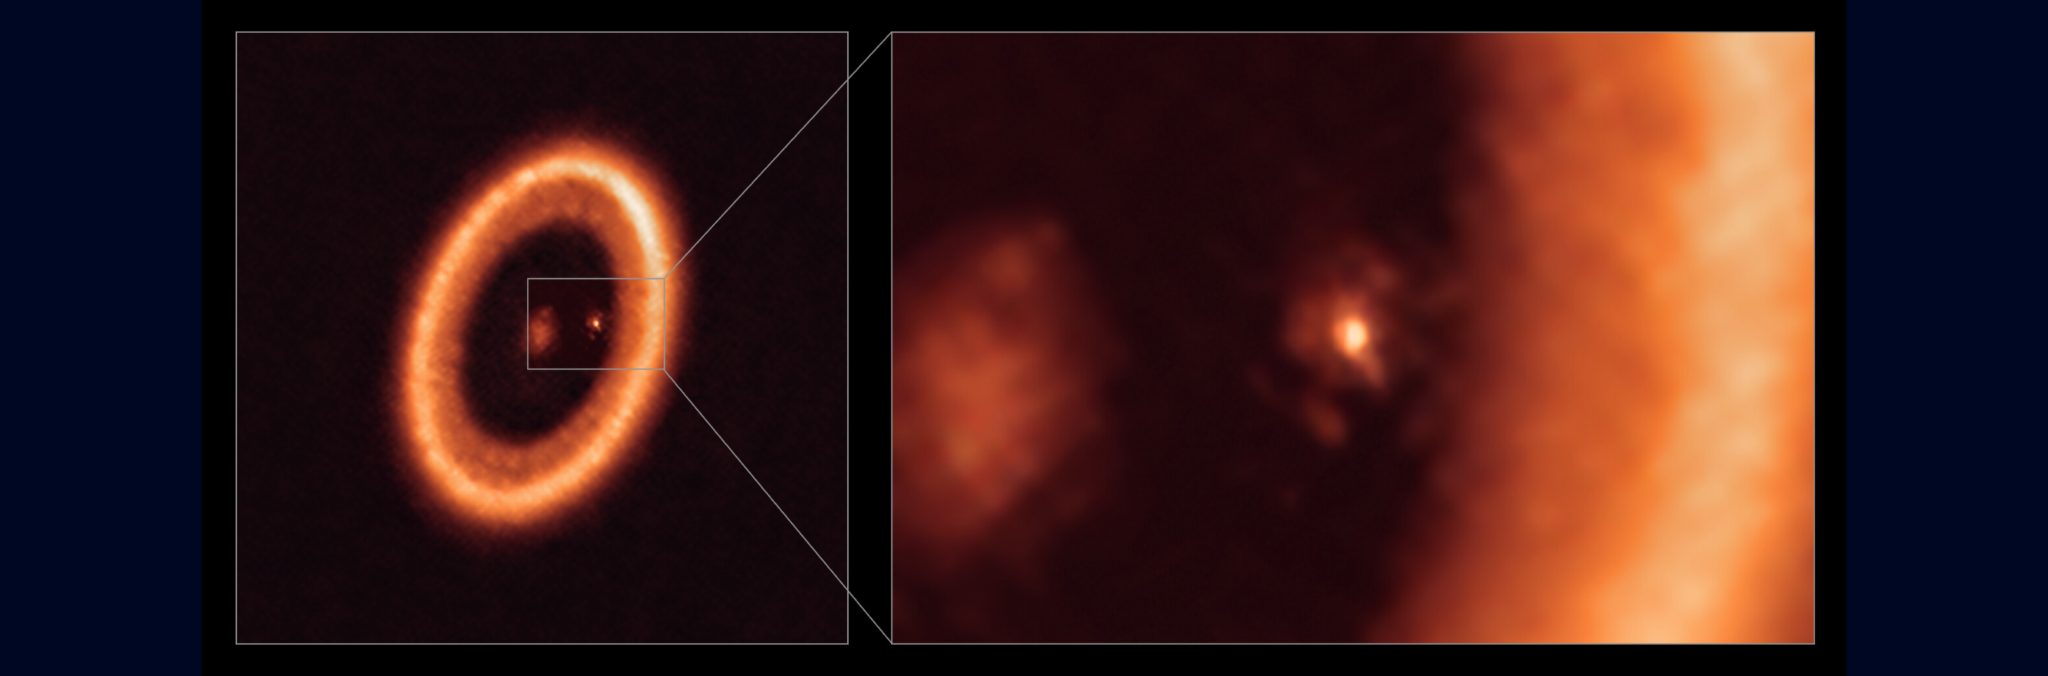 Astronomers make first clear detection of a moon-forming disc around an exoplanet